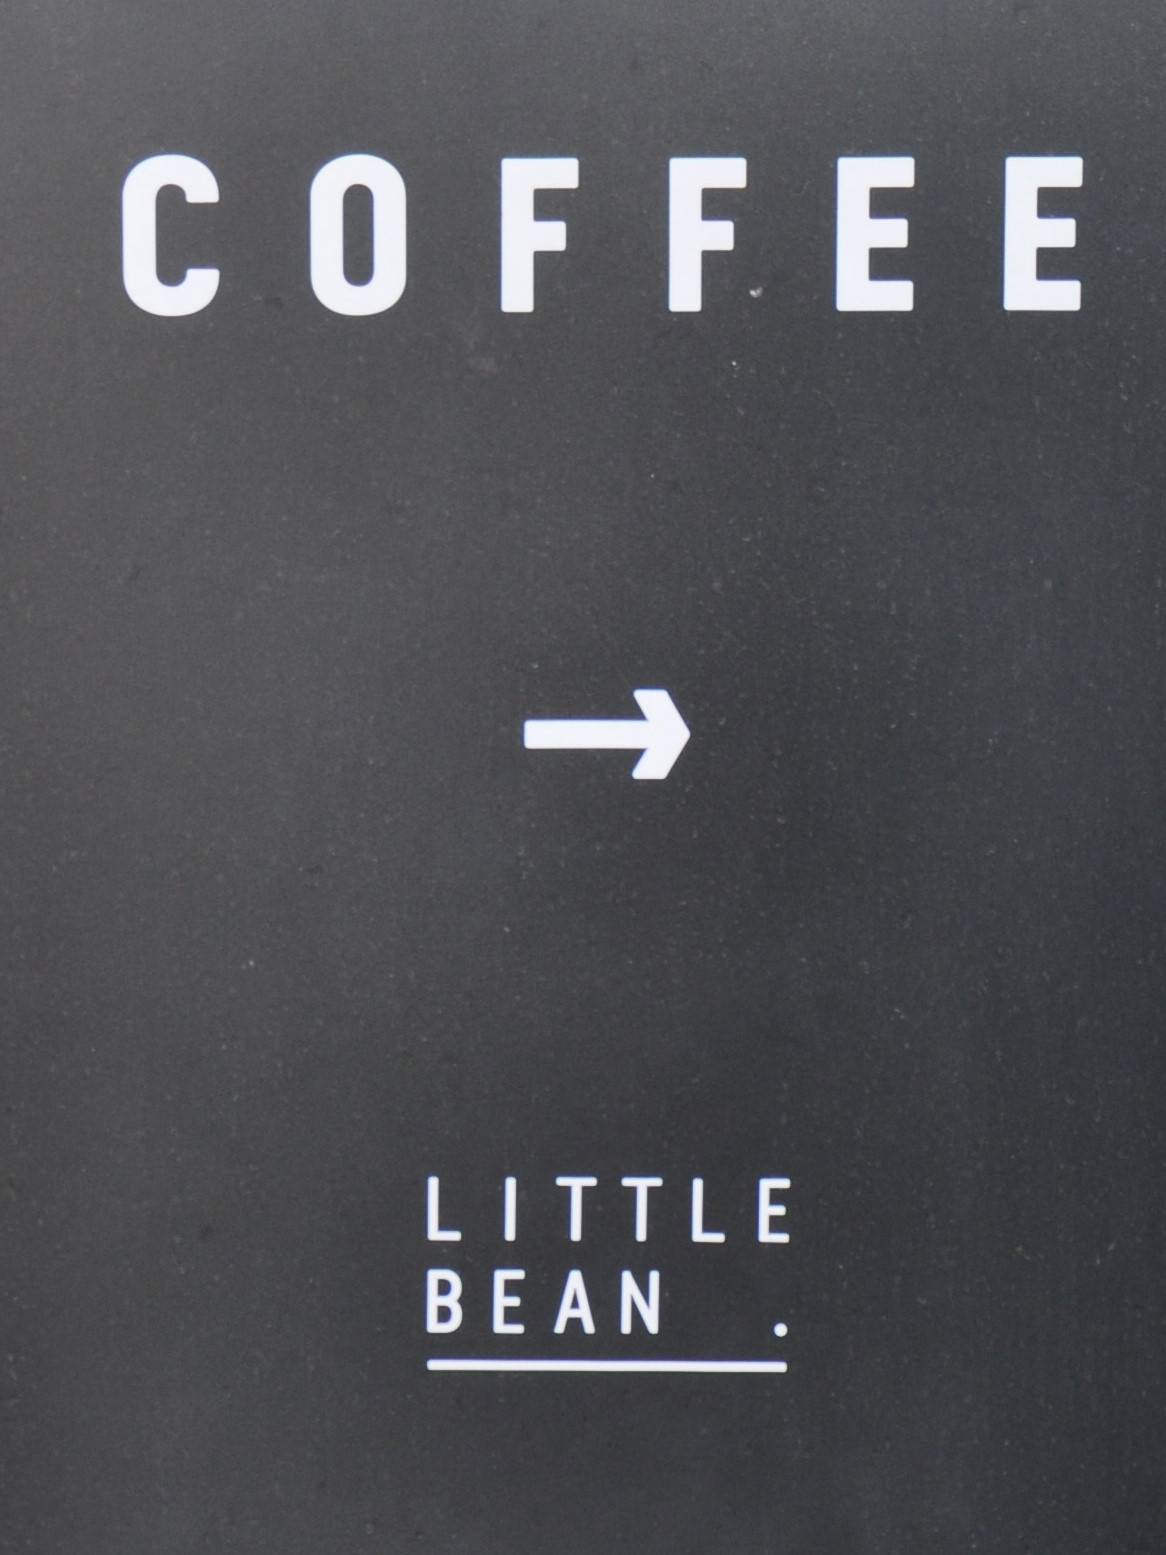 Detail from a very on-point A-board outside the Little Bean Roastery in Pudong, Shanghai.